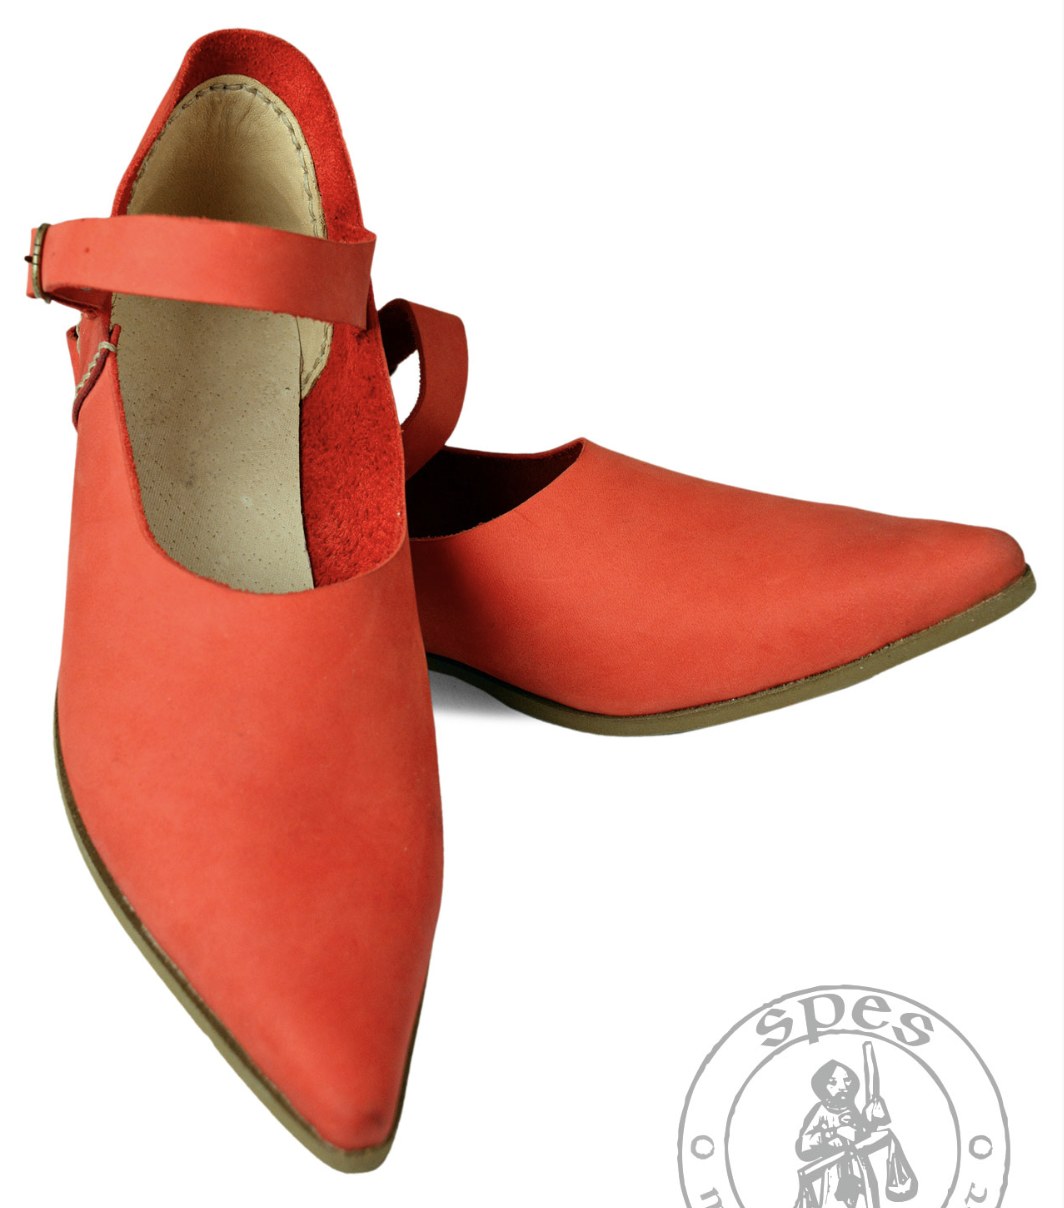 Chaussures Dame : KSS1403 - 110 €